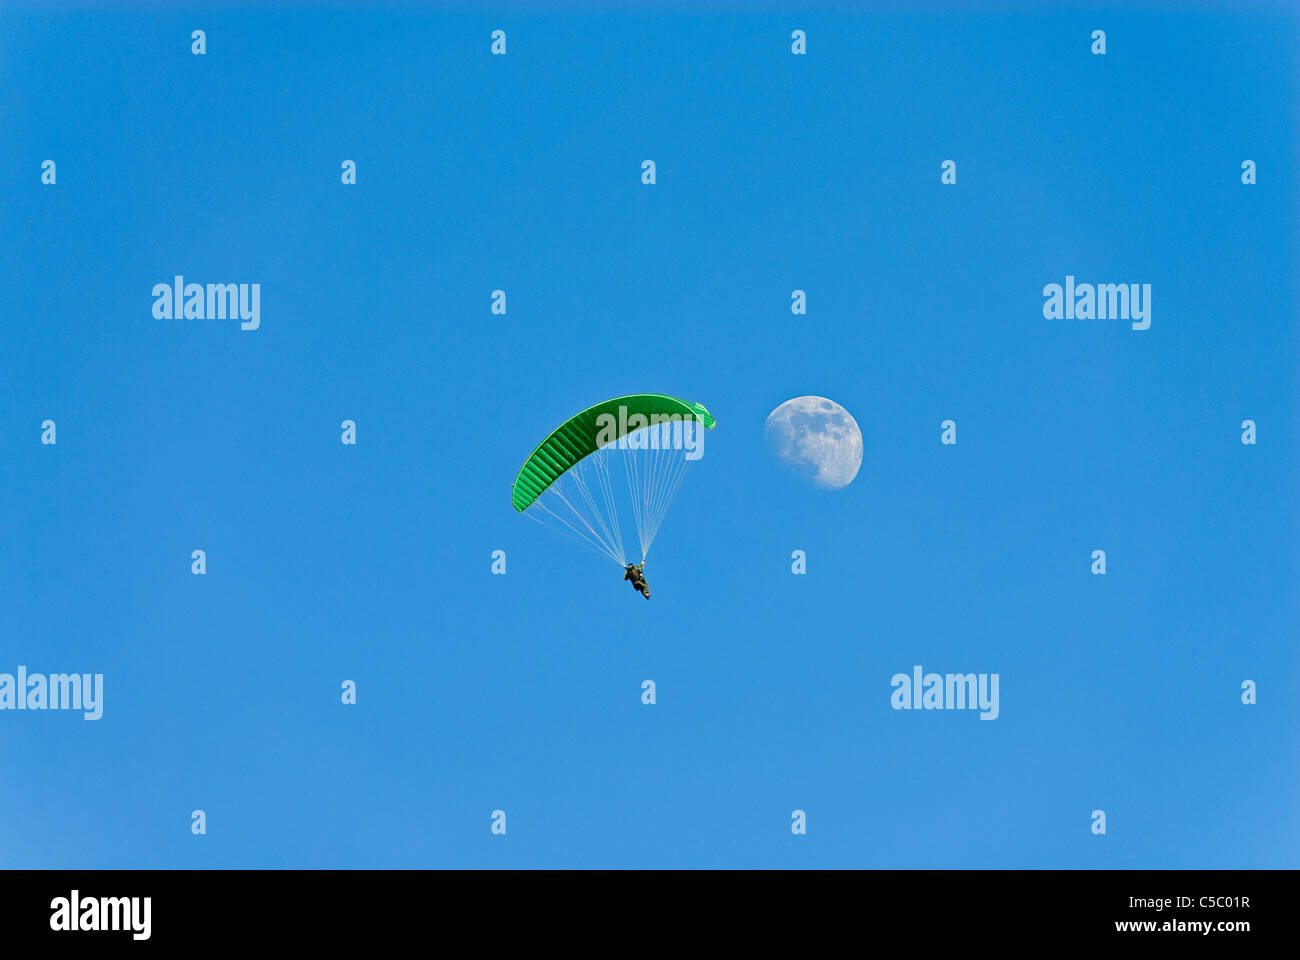 Low angle view of hang gliding by the moon against clear blue sky - Stock Image